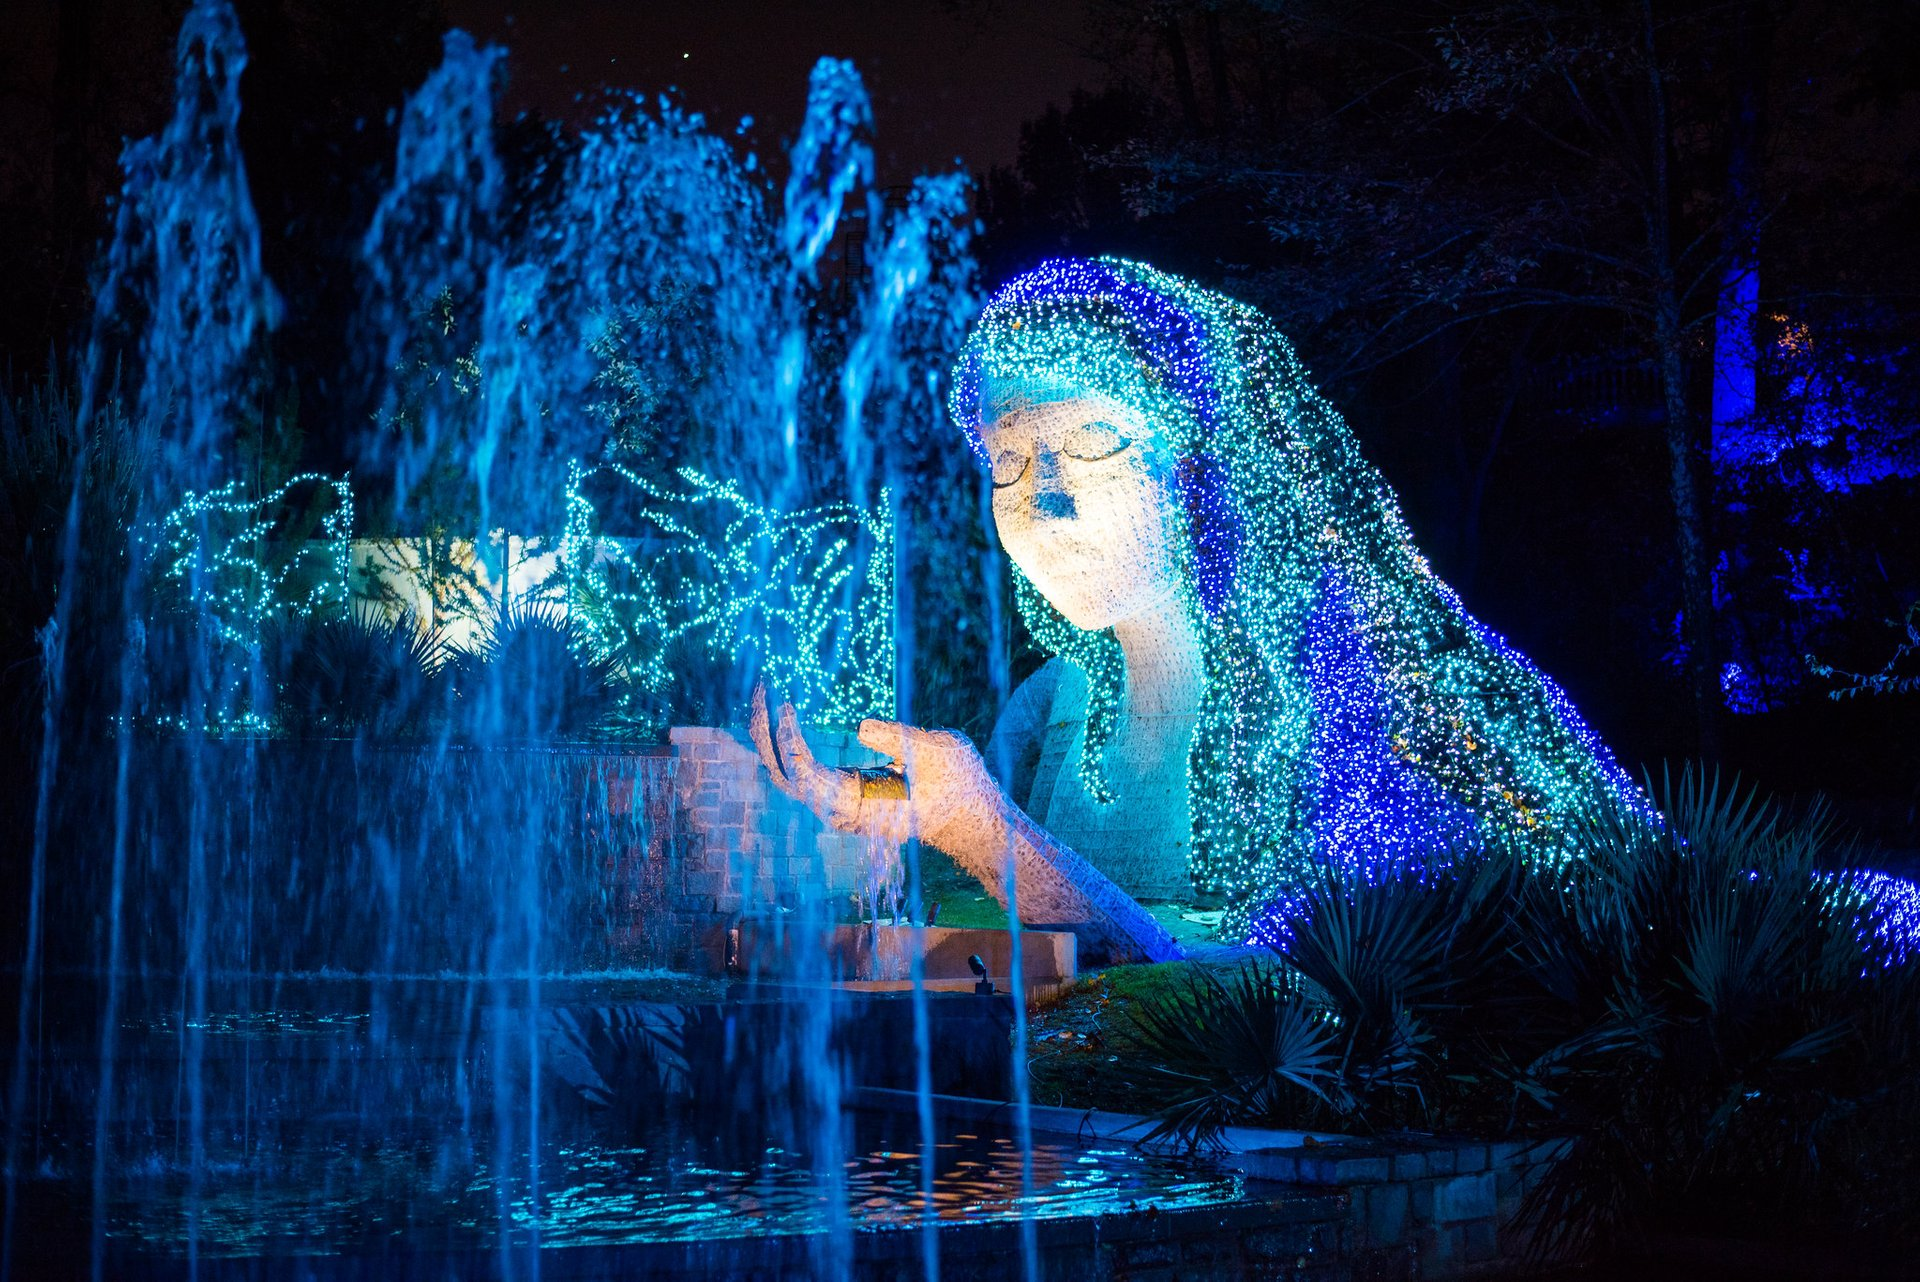 Fountain of Lights at Atlanta Botanical Garden Fountain (her hair is made up of 24,000 lights). 2020